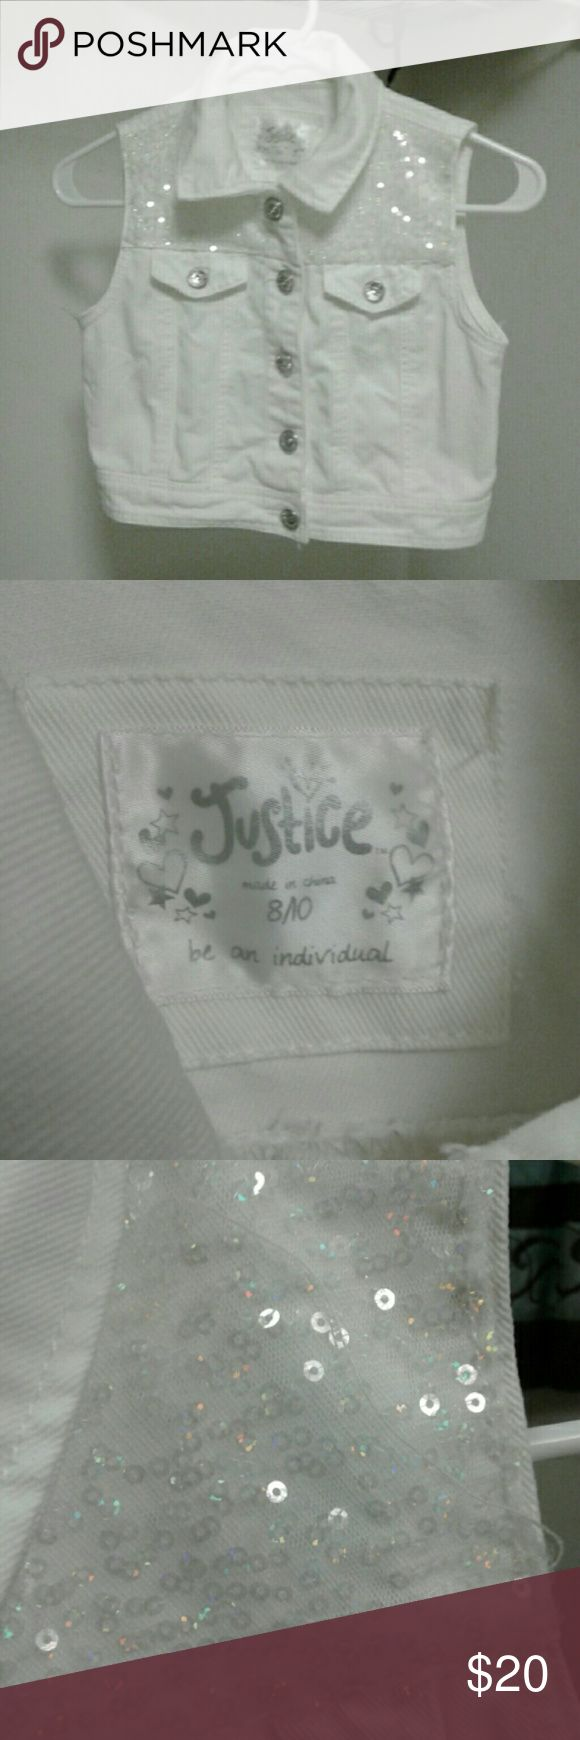 White jean vest Brand new never worn. From Justice in the mall. Child's size Justice Jackets & Coats Jean Jackets